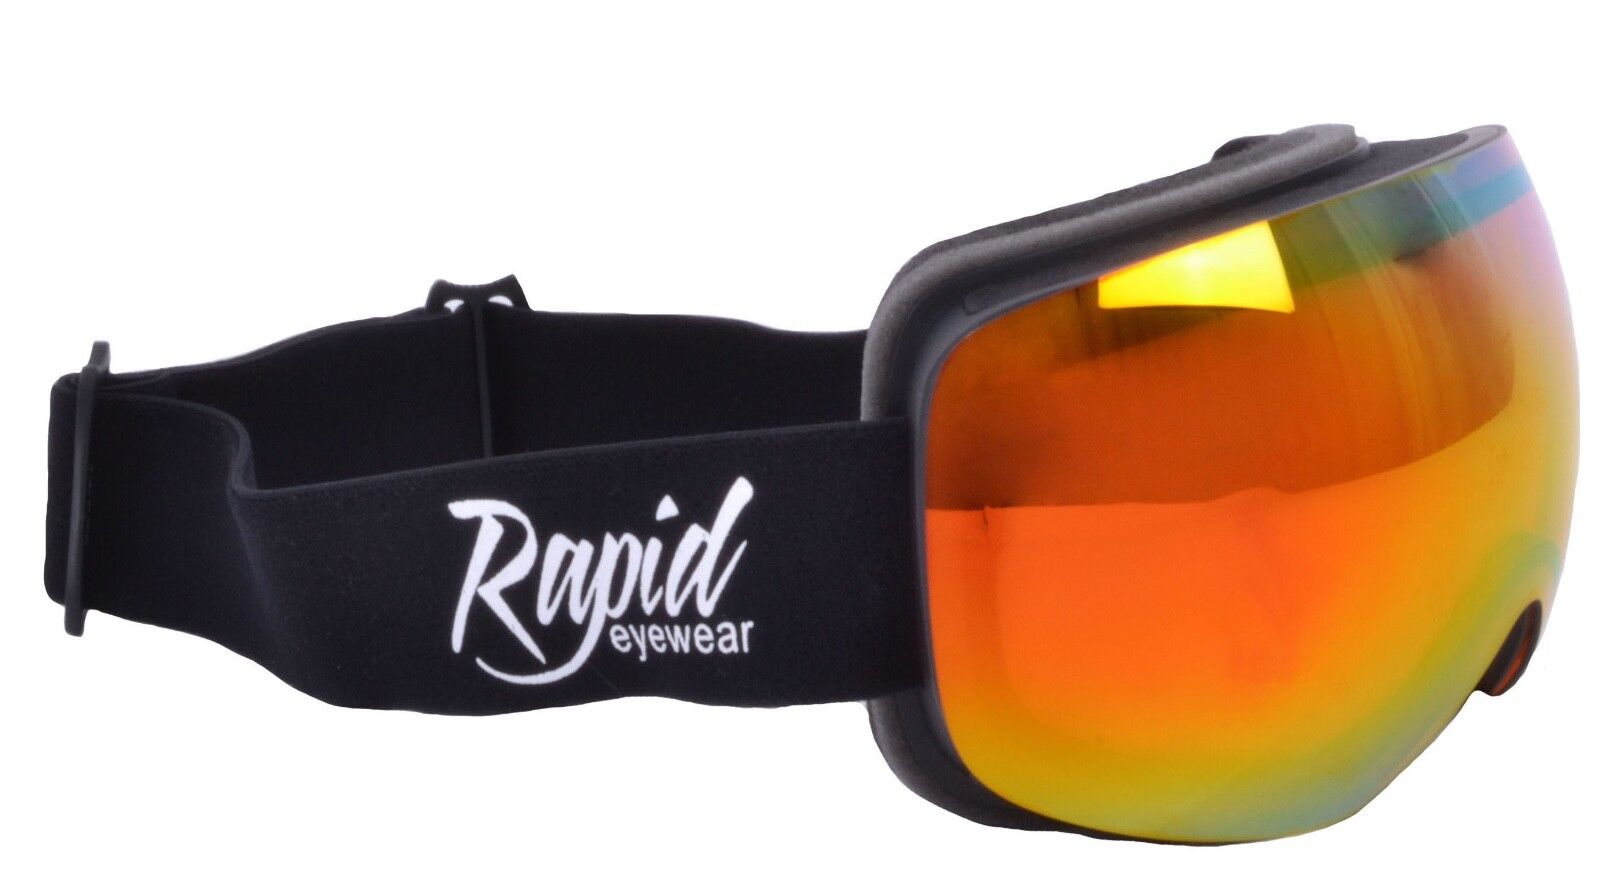 b2e17ac6cc1 Details about SNOW SKI GOGGLES Also for Snowboarding. Prescription Rx  Options. Anti Fog. Adult